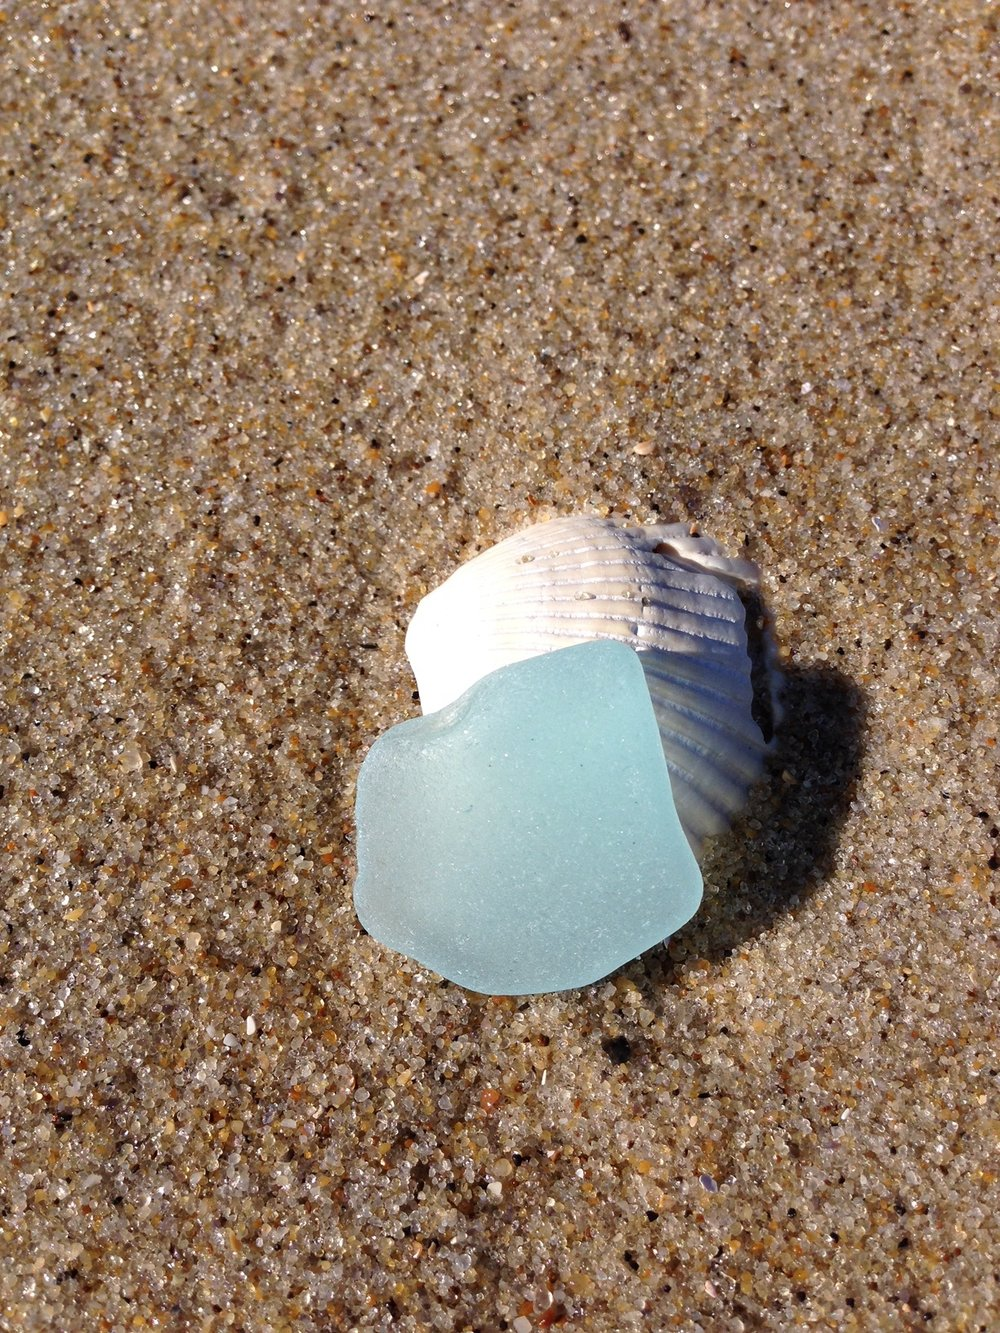 seaglass and shell.JPG